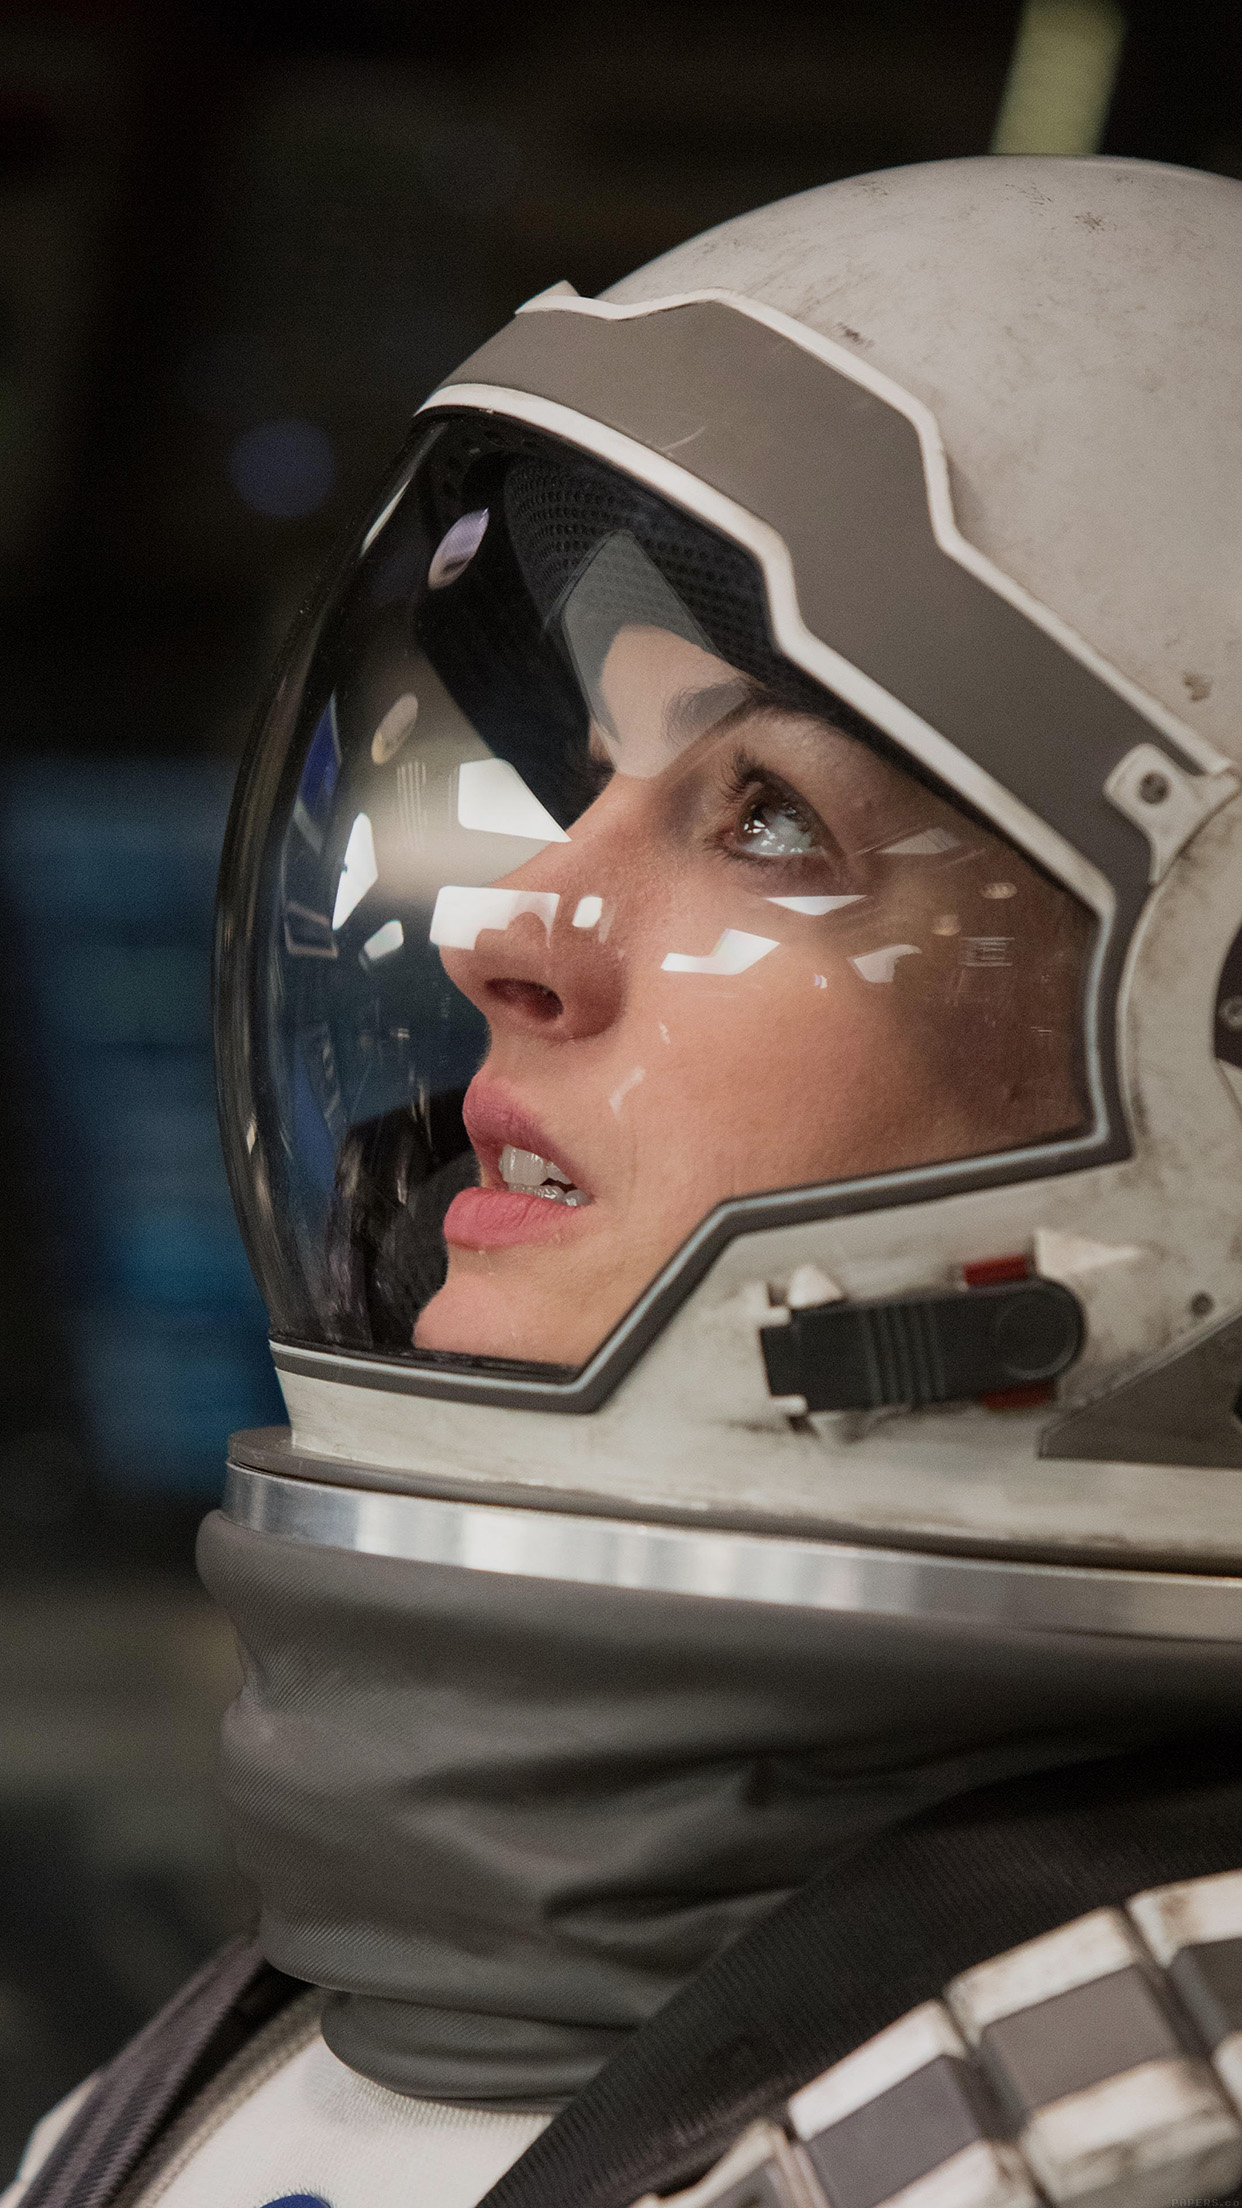 Interstellar Brand Anne Hathaway Celebrity Android wallpaper